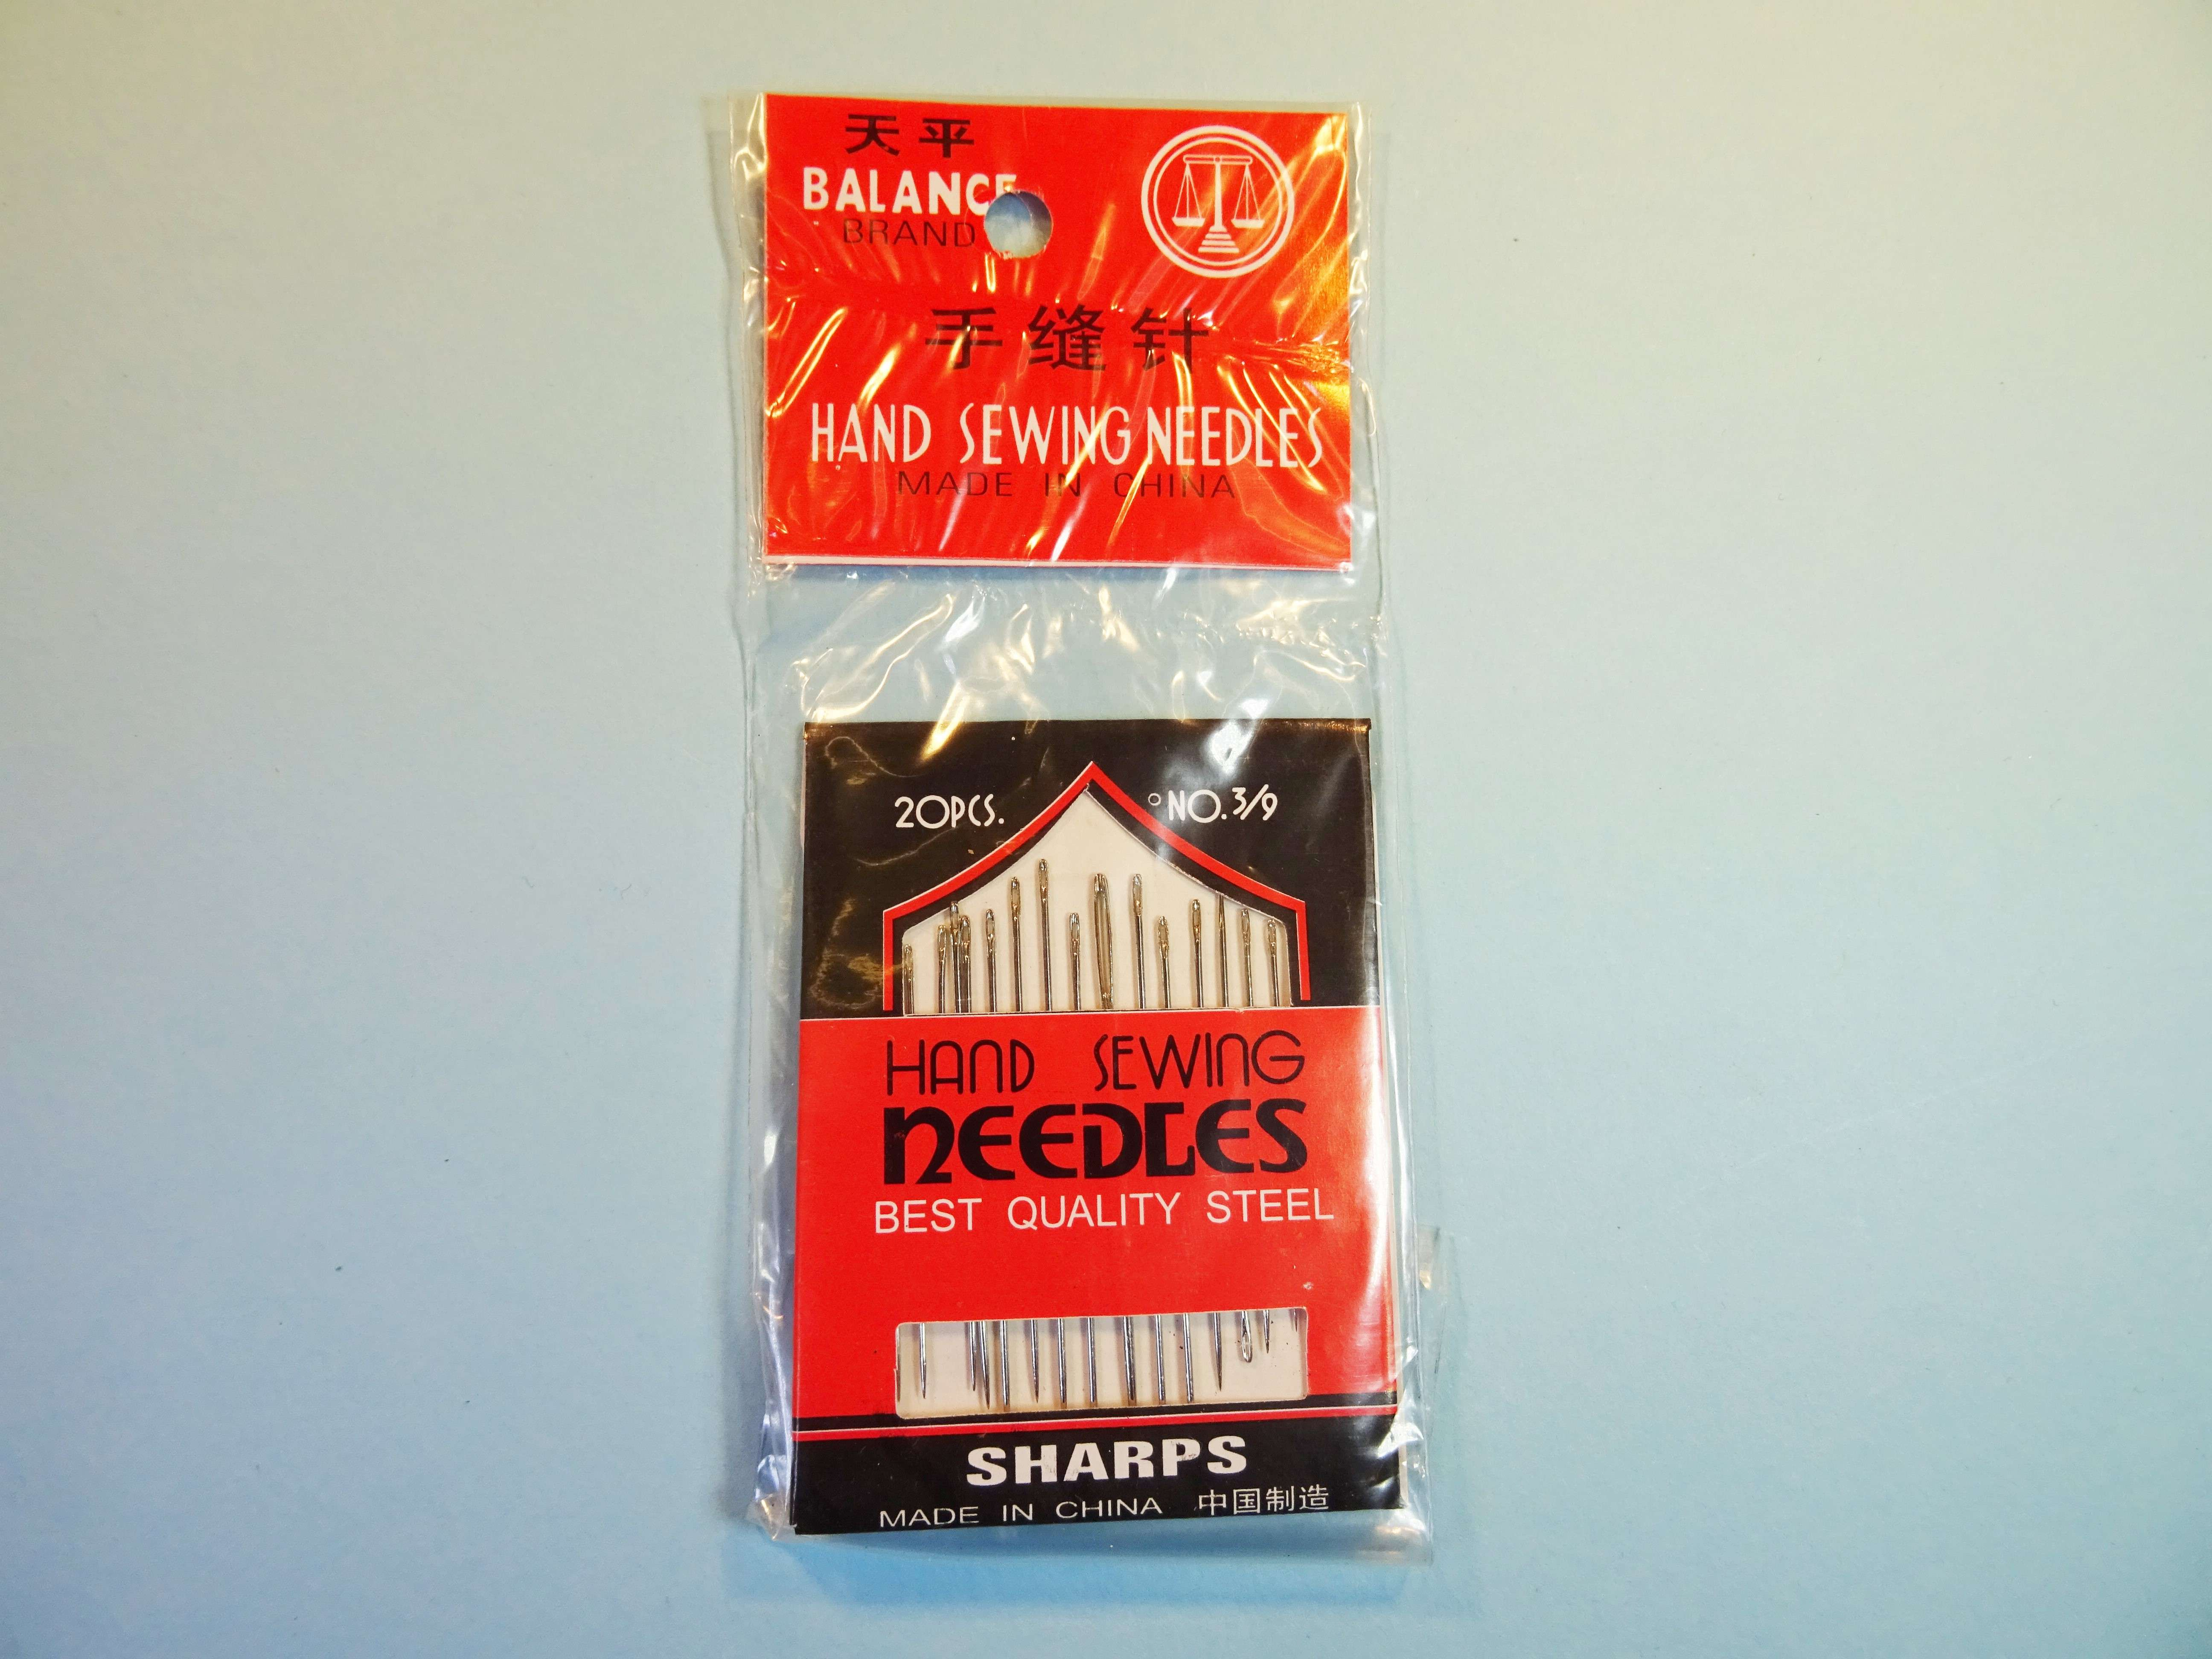 72 packs of sharps hand sewing needles size 3/9 [ 20 needles